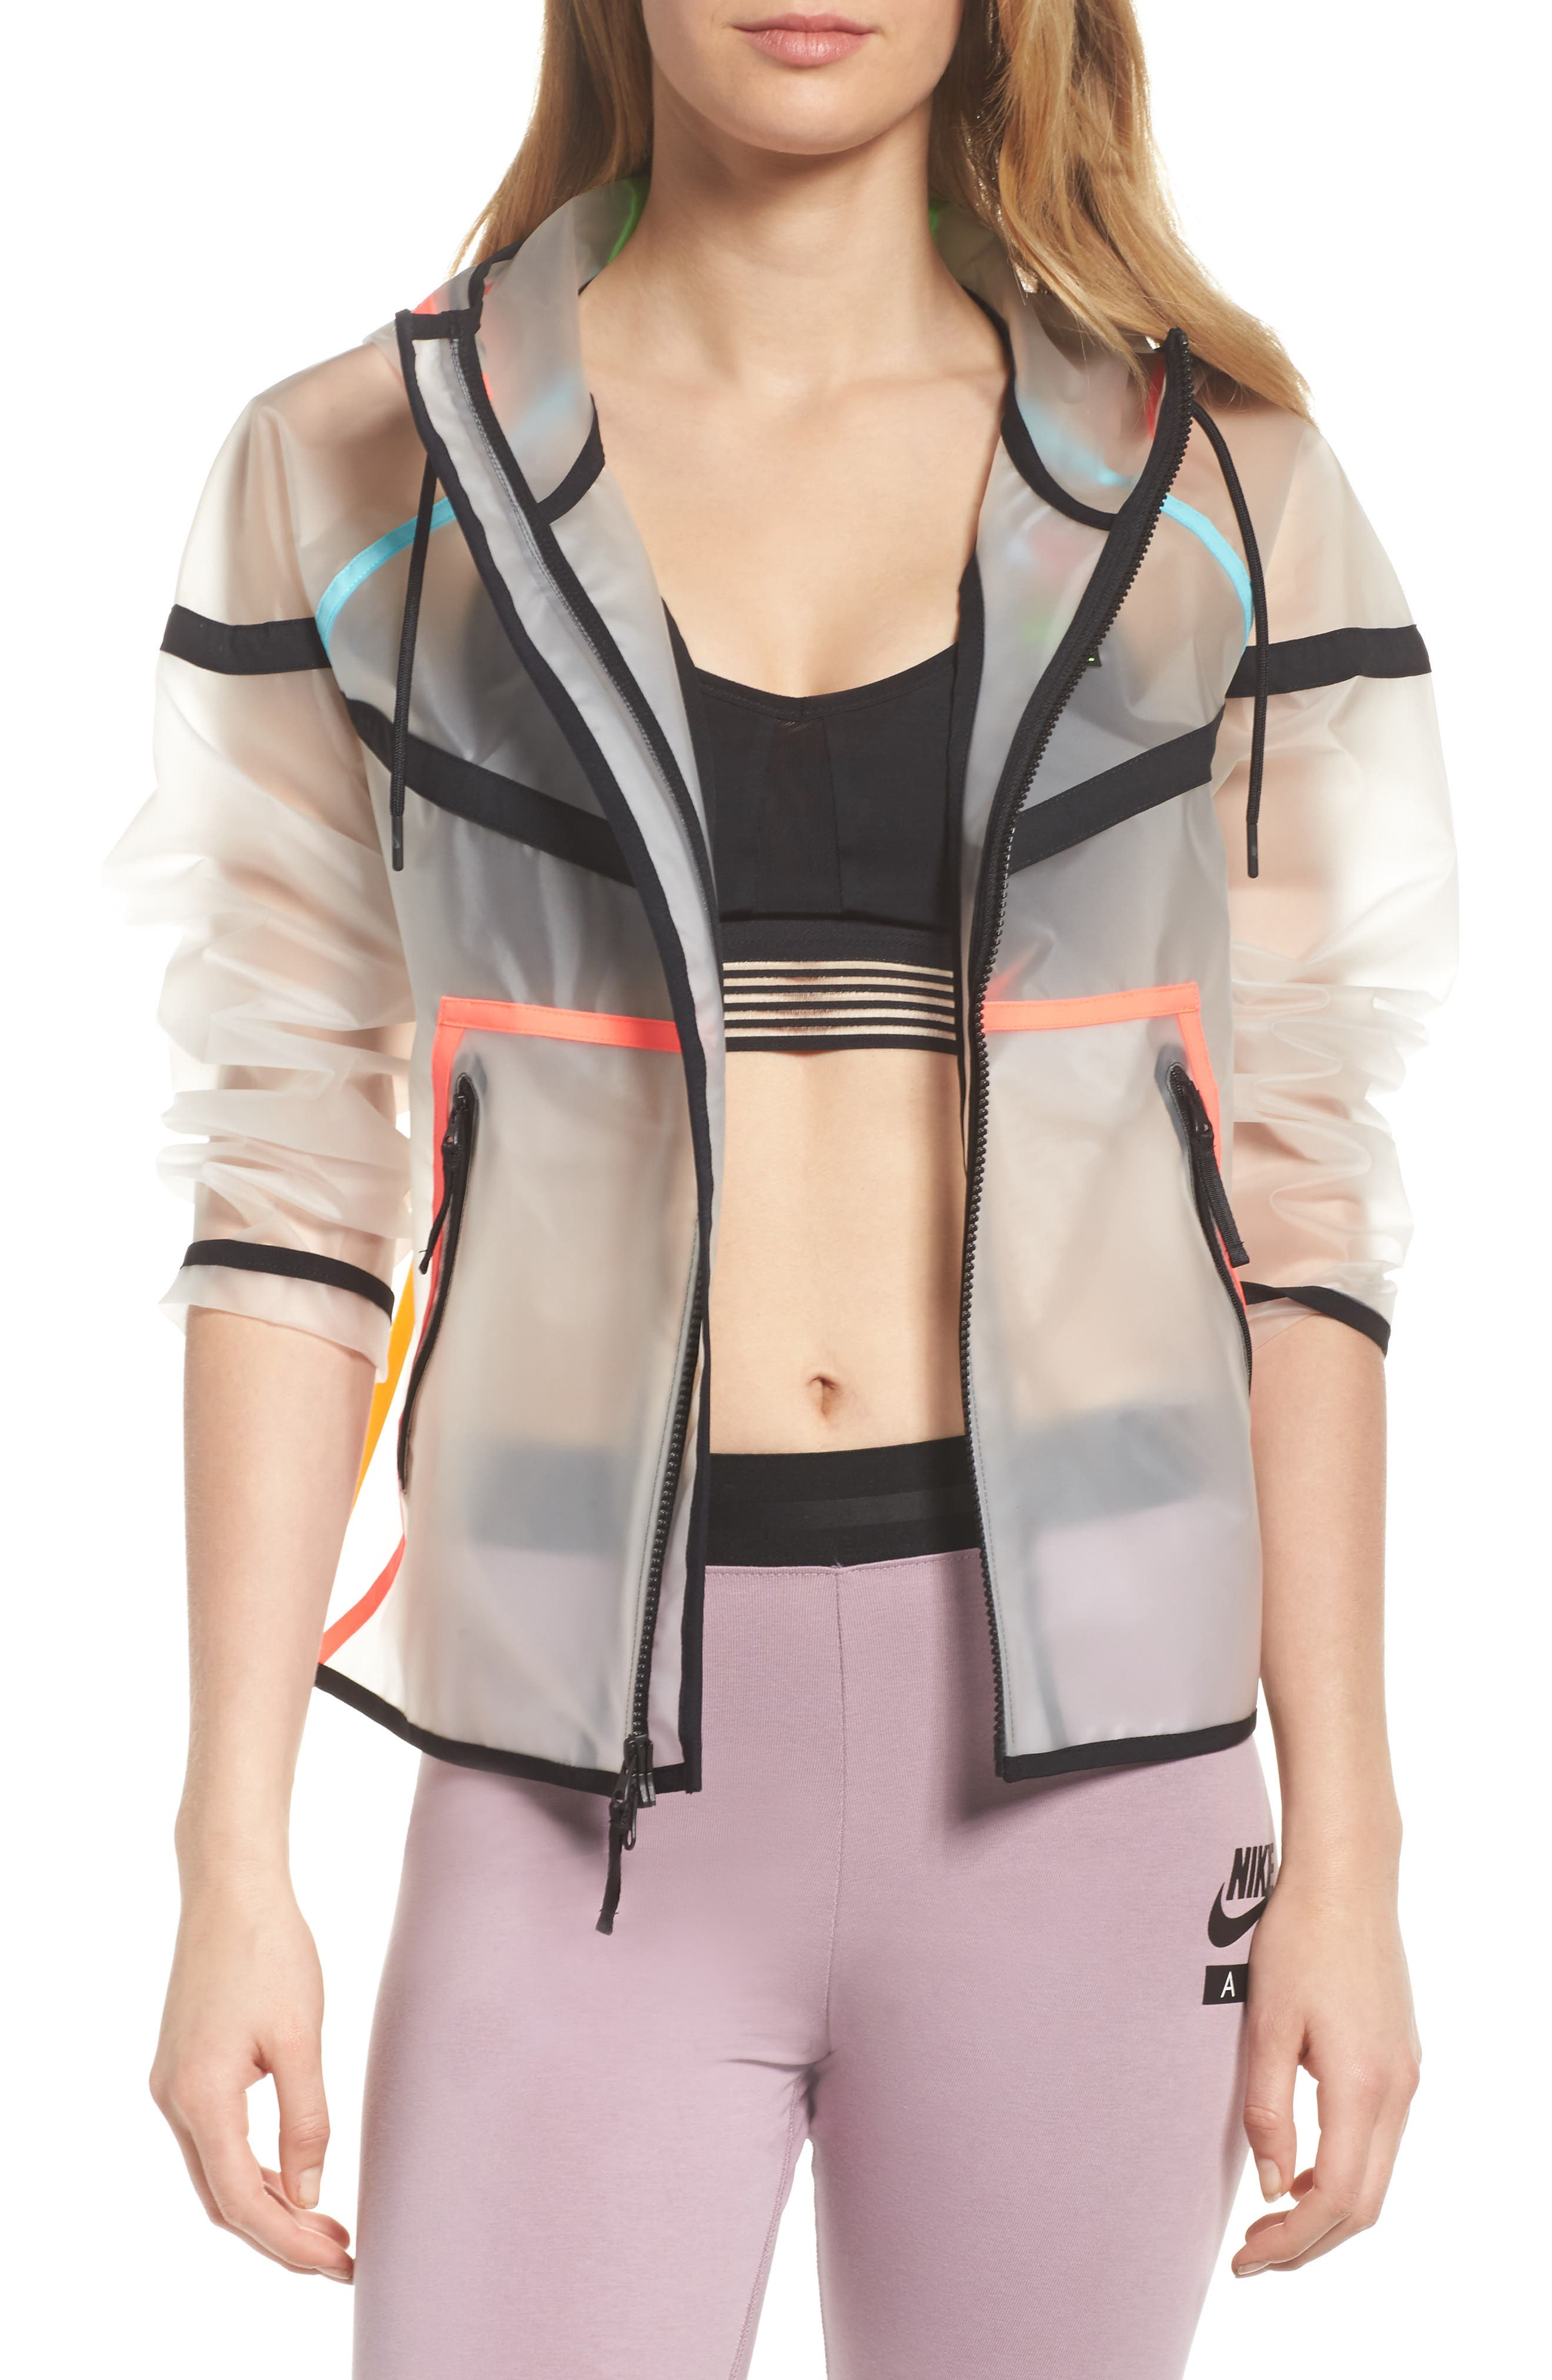 Nike NikeLab Collection Ghost Windrunner Women's Jacket